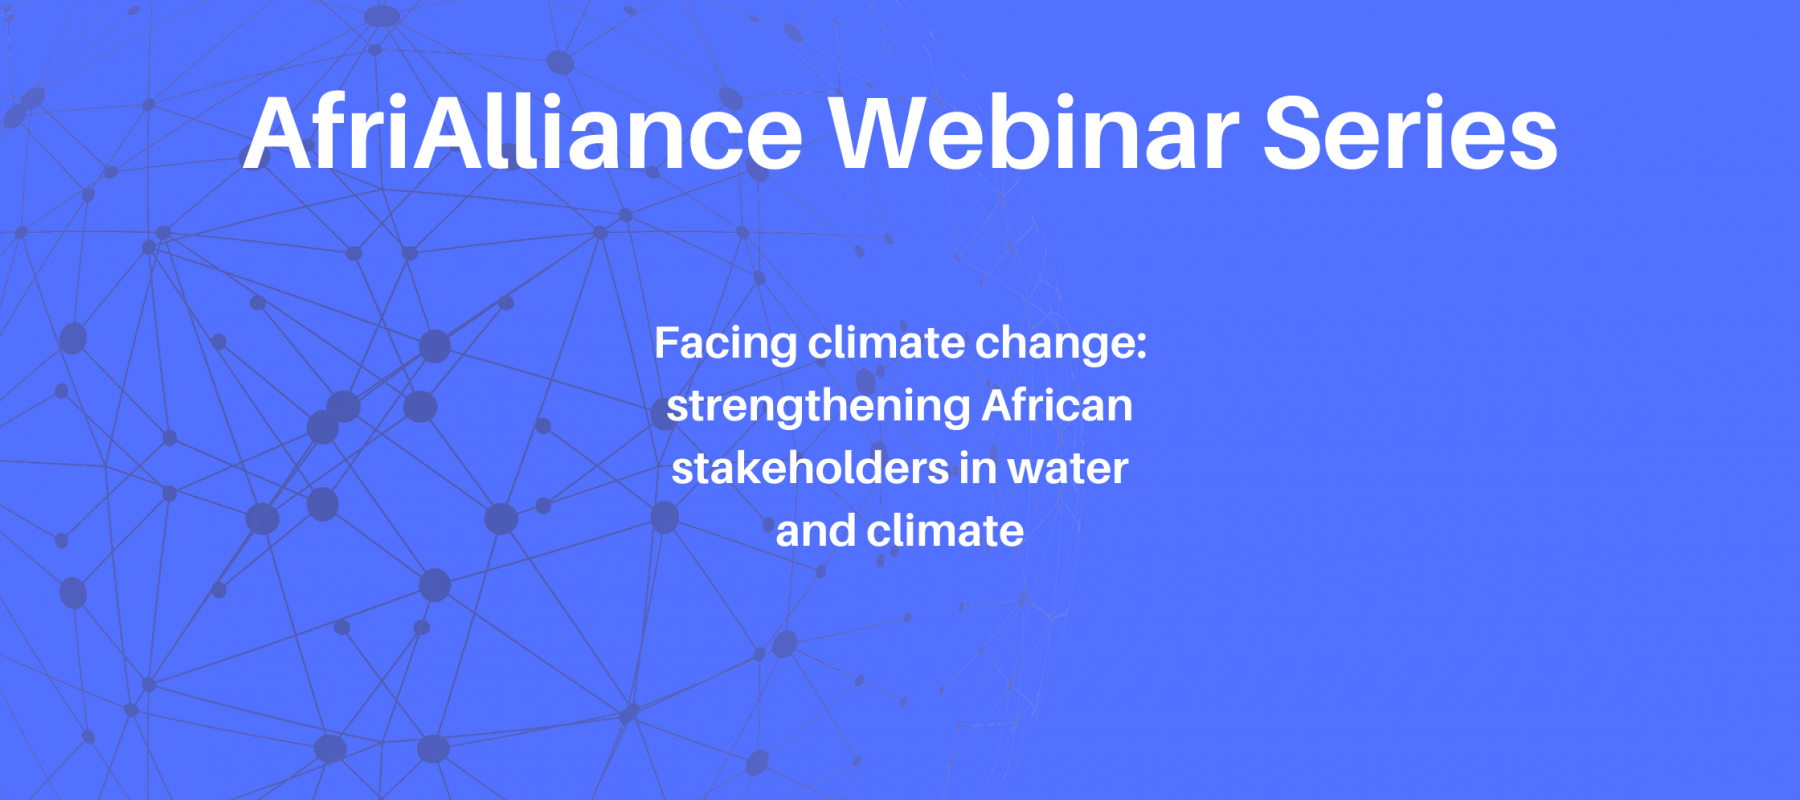 AfriAlliance Webinar Series